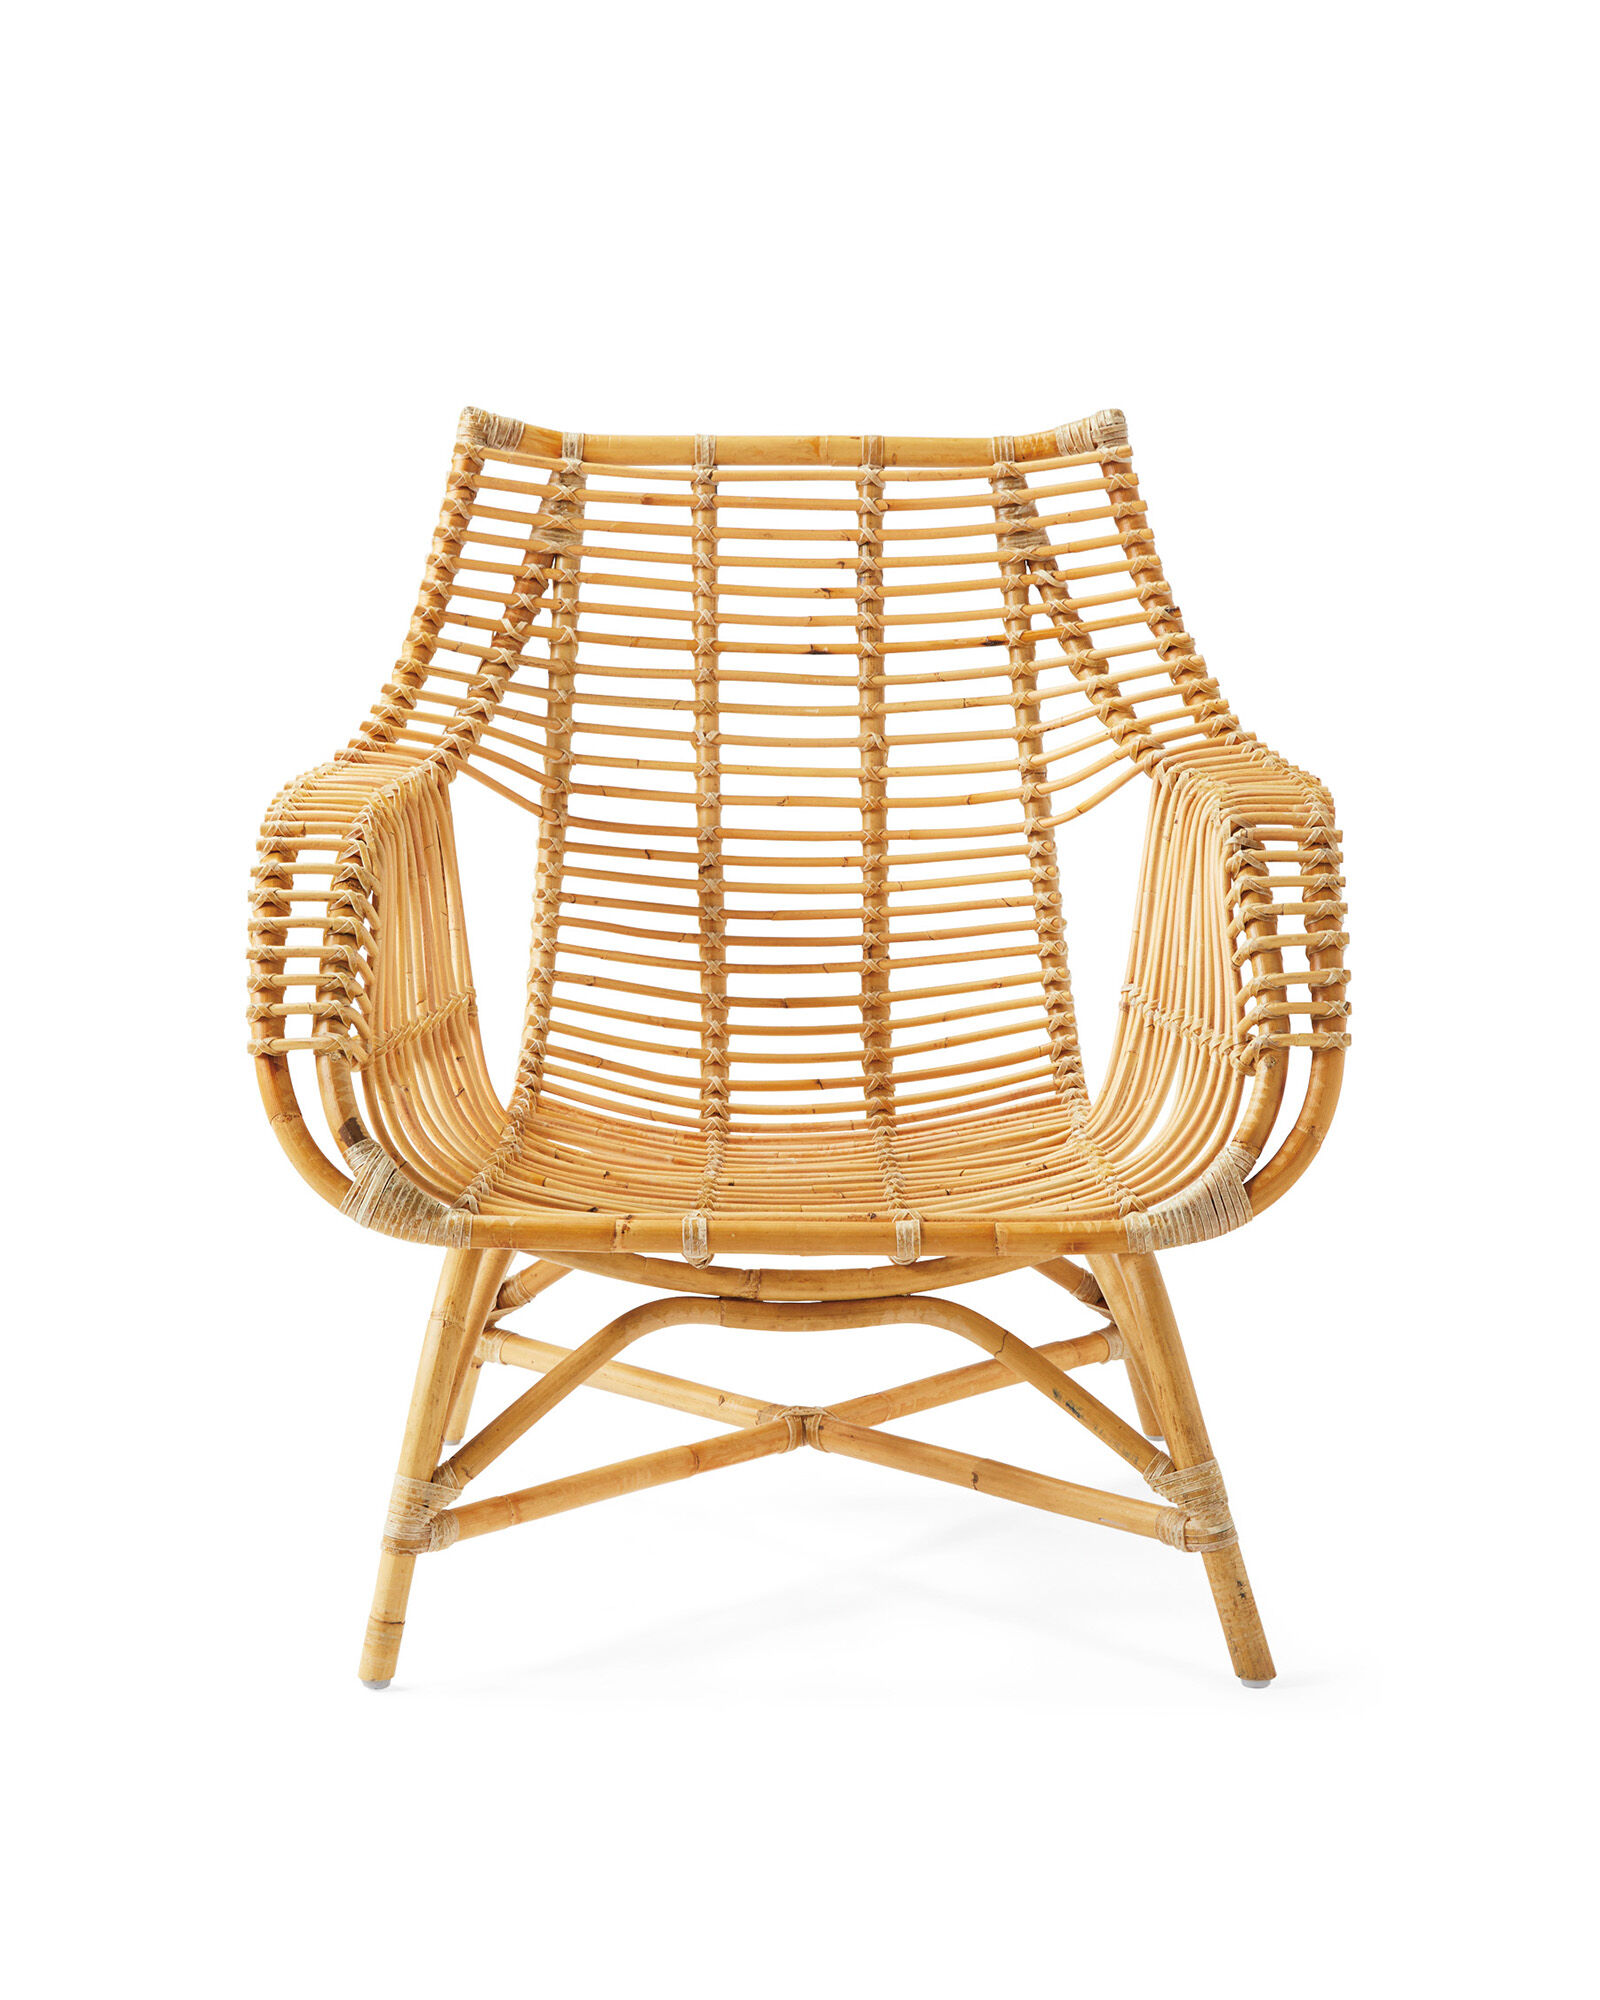 Venice Rattan Chair - Natural